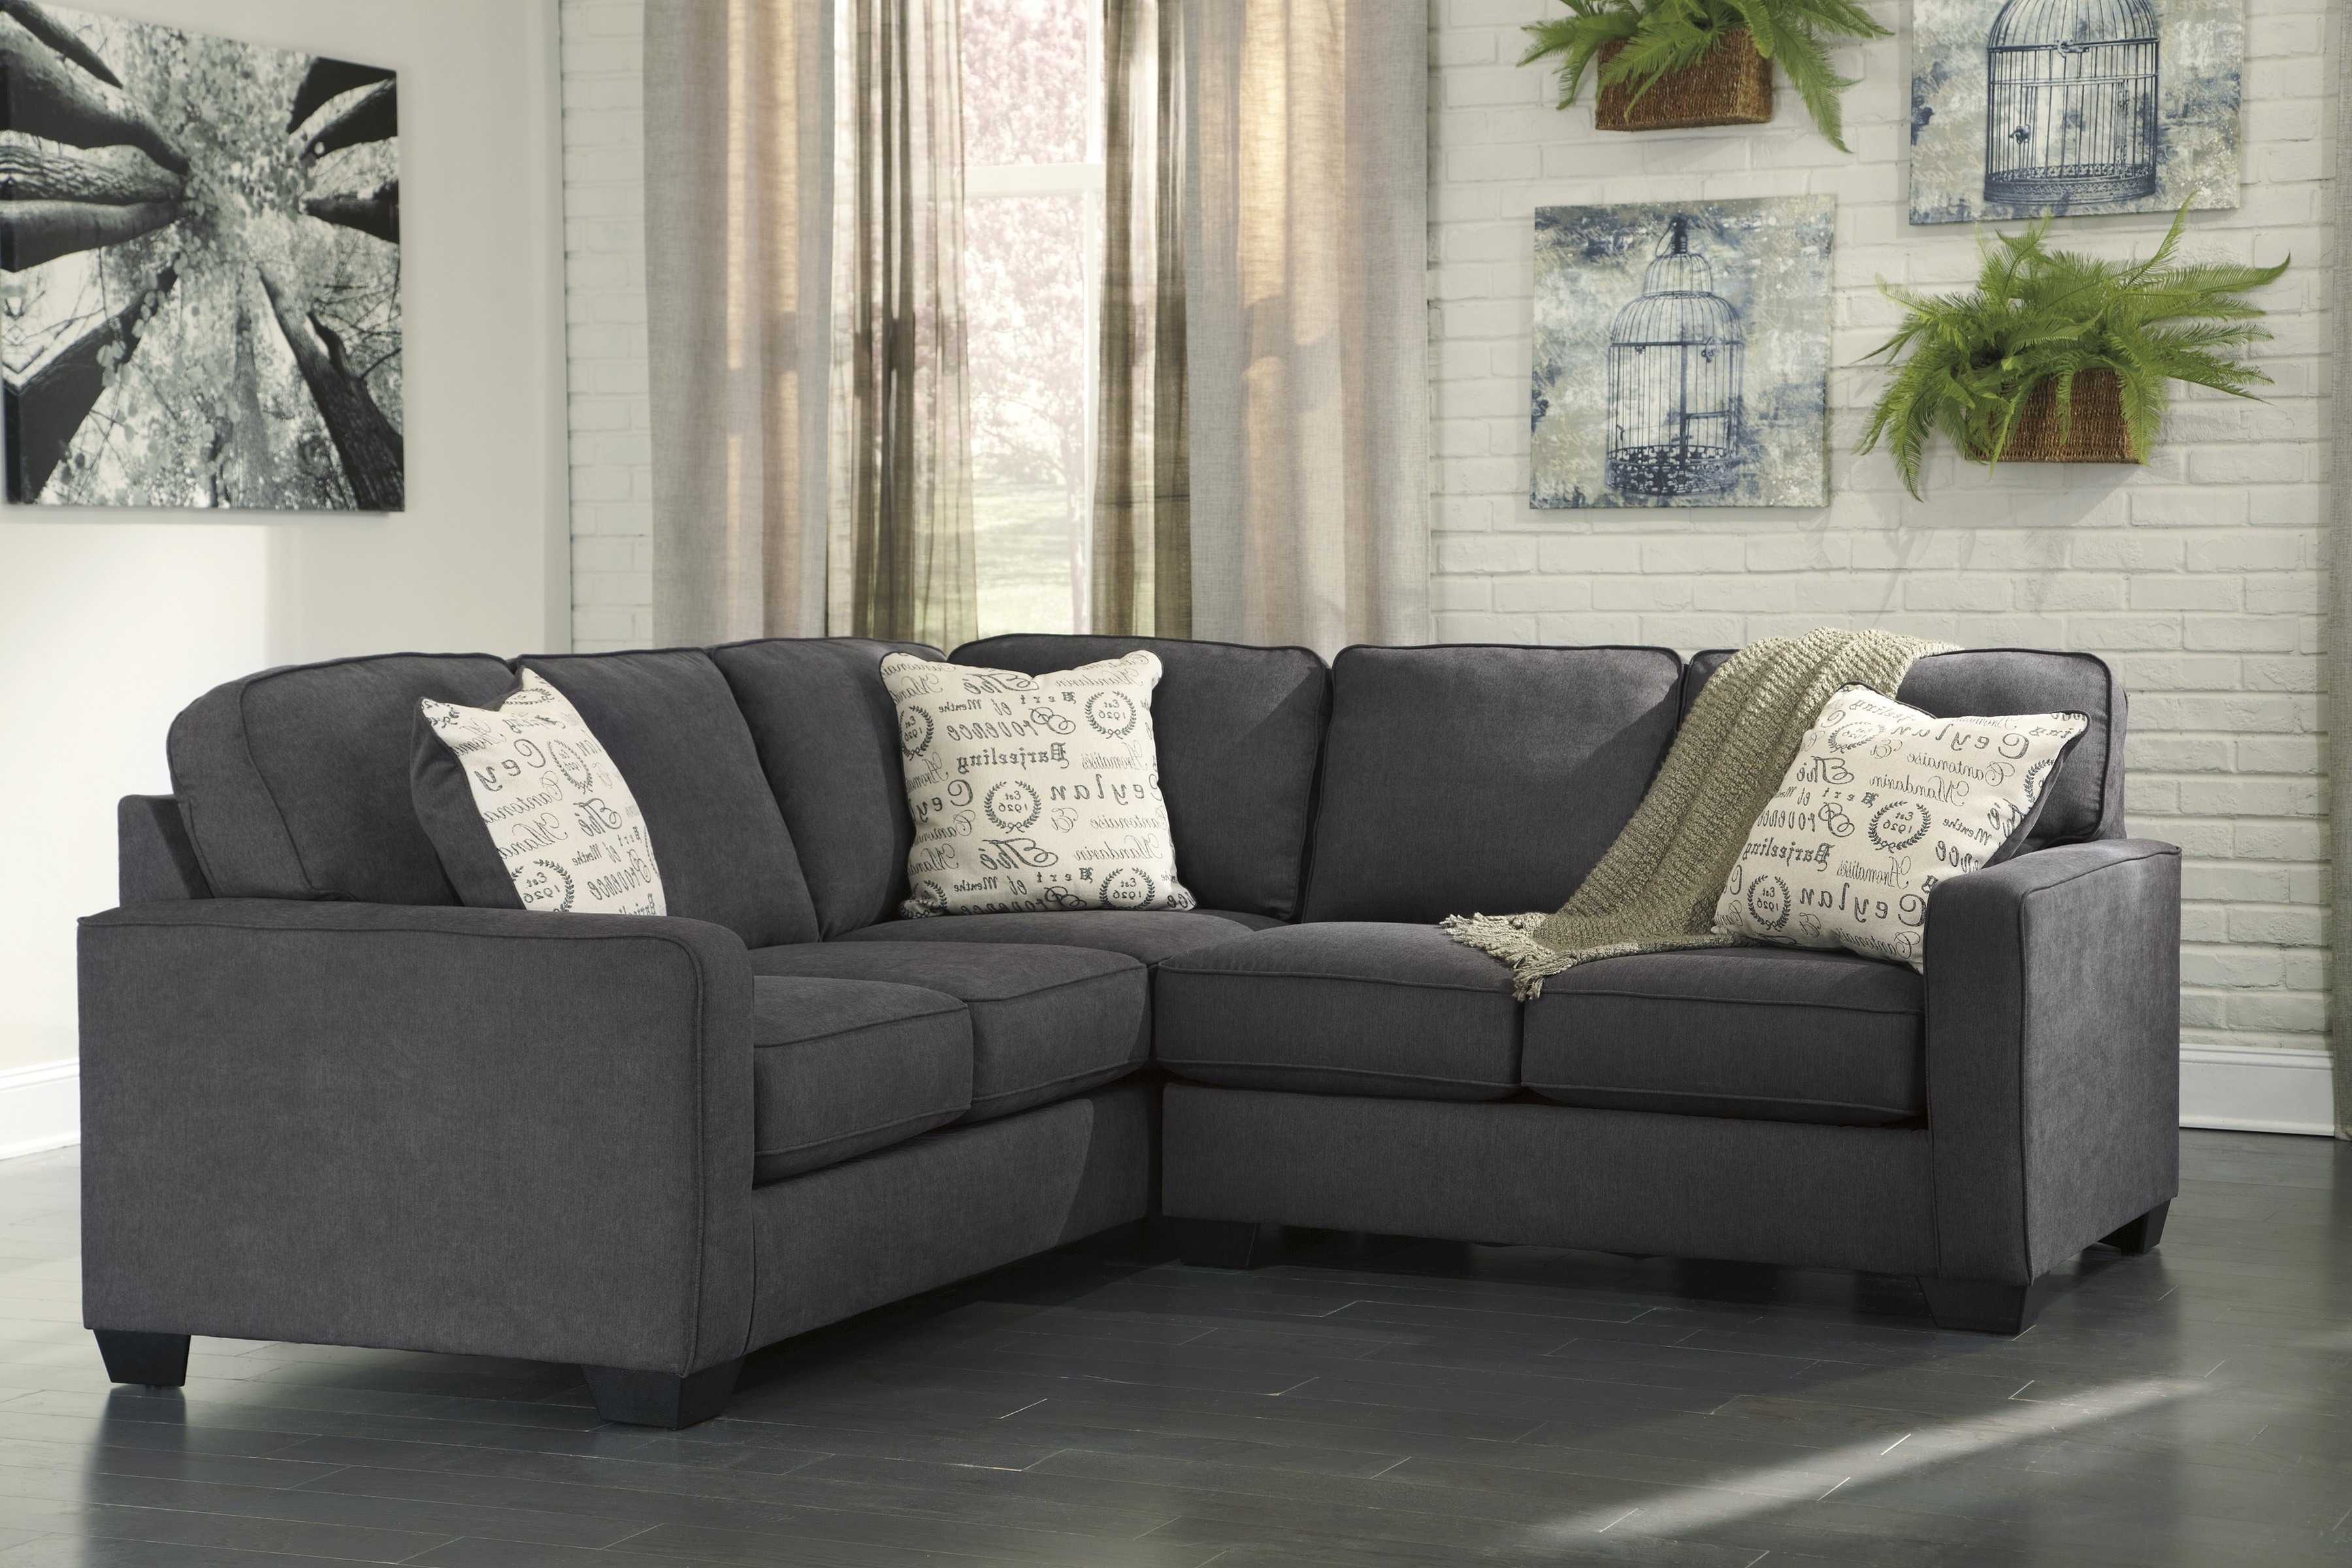 Alenya Charcoal Piece Sectional Sofa For Furnitureusa Raf Love Tures Pertaining To Aspen 2 Piece Sectionals With Raf Chaise (Image 3 of 25)